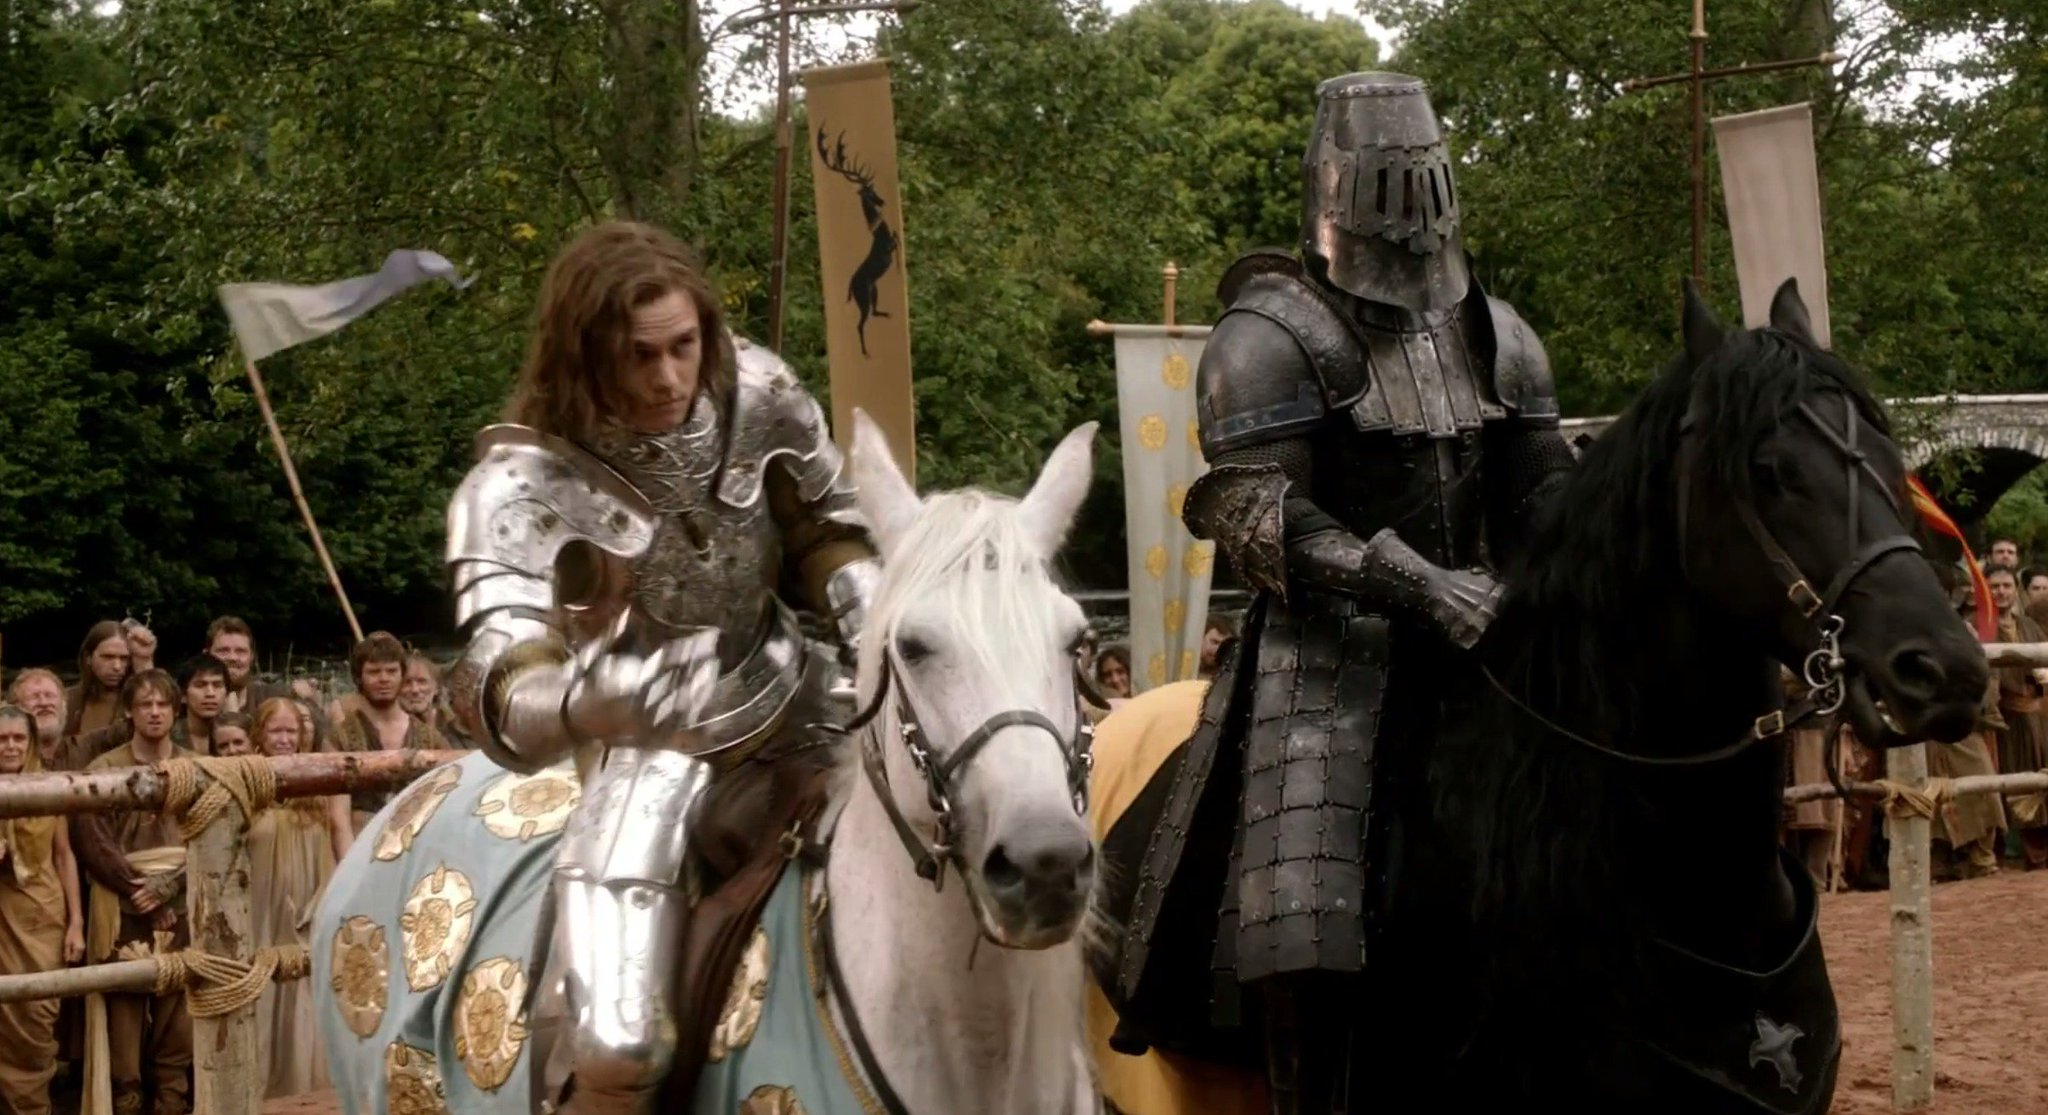 Loras is set up to fight The Mountain, who's horse seems like it's out of control. Loras' smirk intensifies. https://t.co/xBVWpzl4Xh